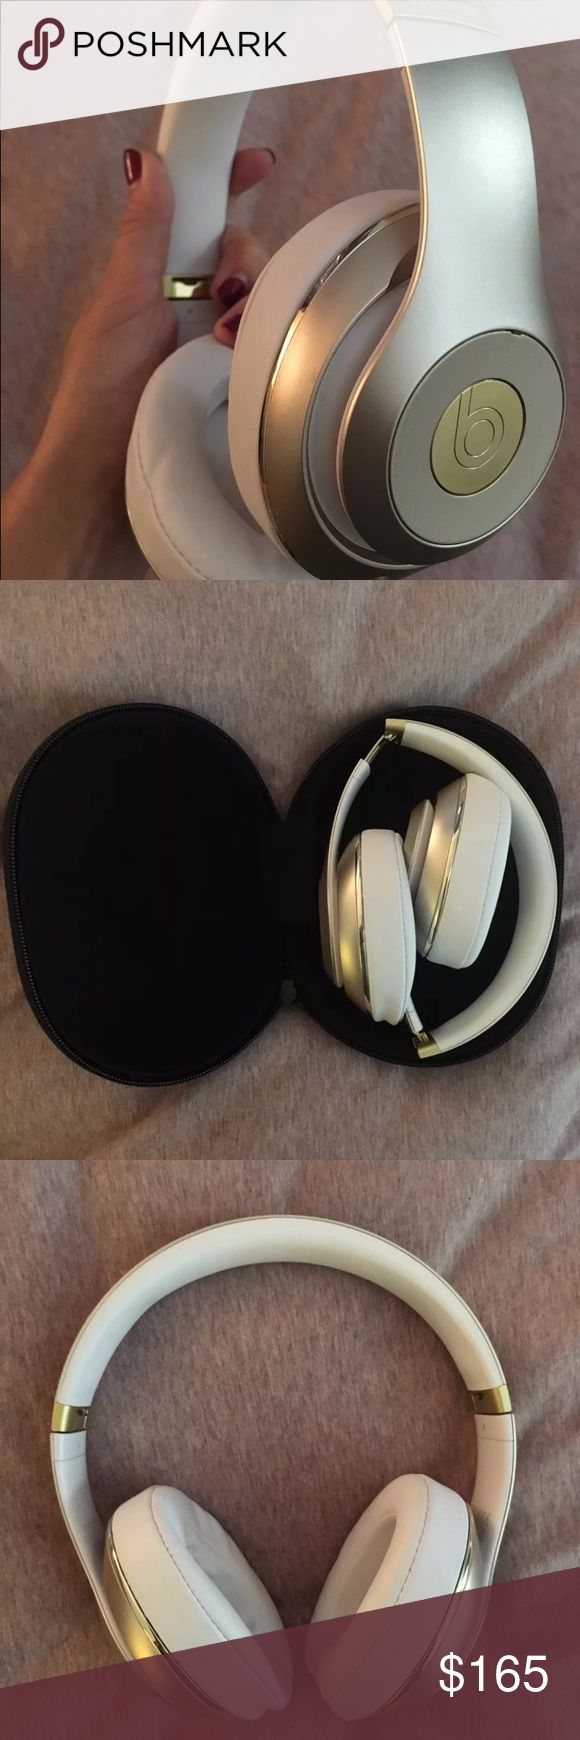 Beats by Dre Beats Studio Wireless Gold Gently used Beats Bluetooth Gold headphones. Barely worn. Comes with hard case, charging chord, and two connection chords (white and red) when you don't want to use Bluetooth ability. Light marks on plush leather ear cover. Message with any and all questions Other